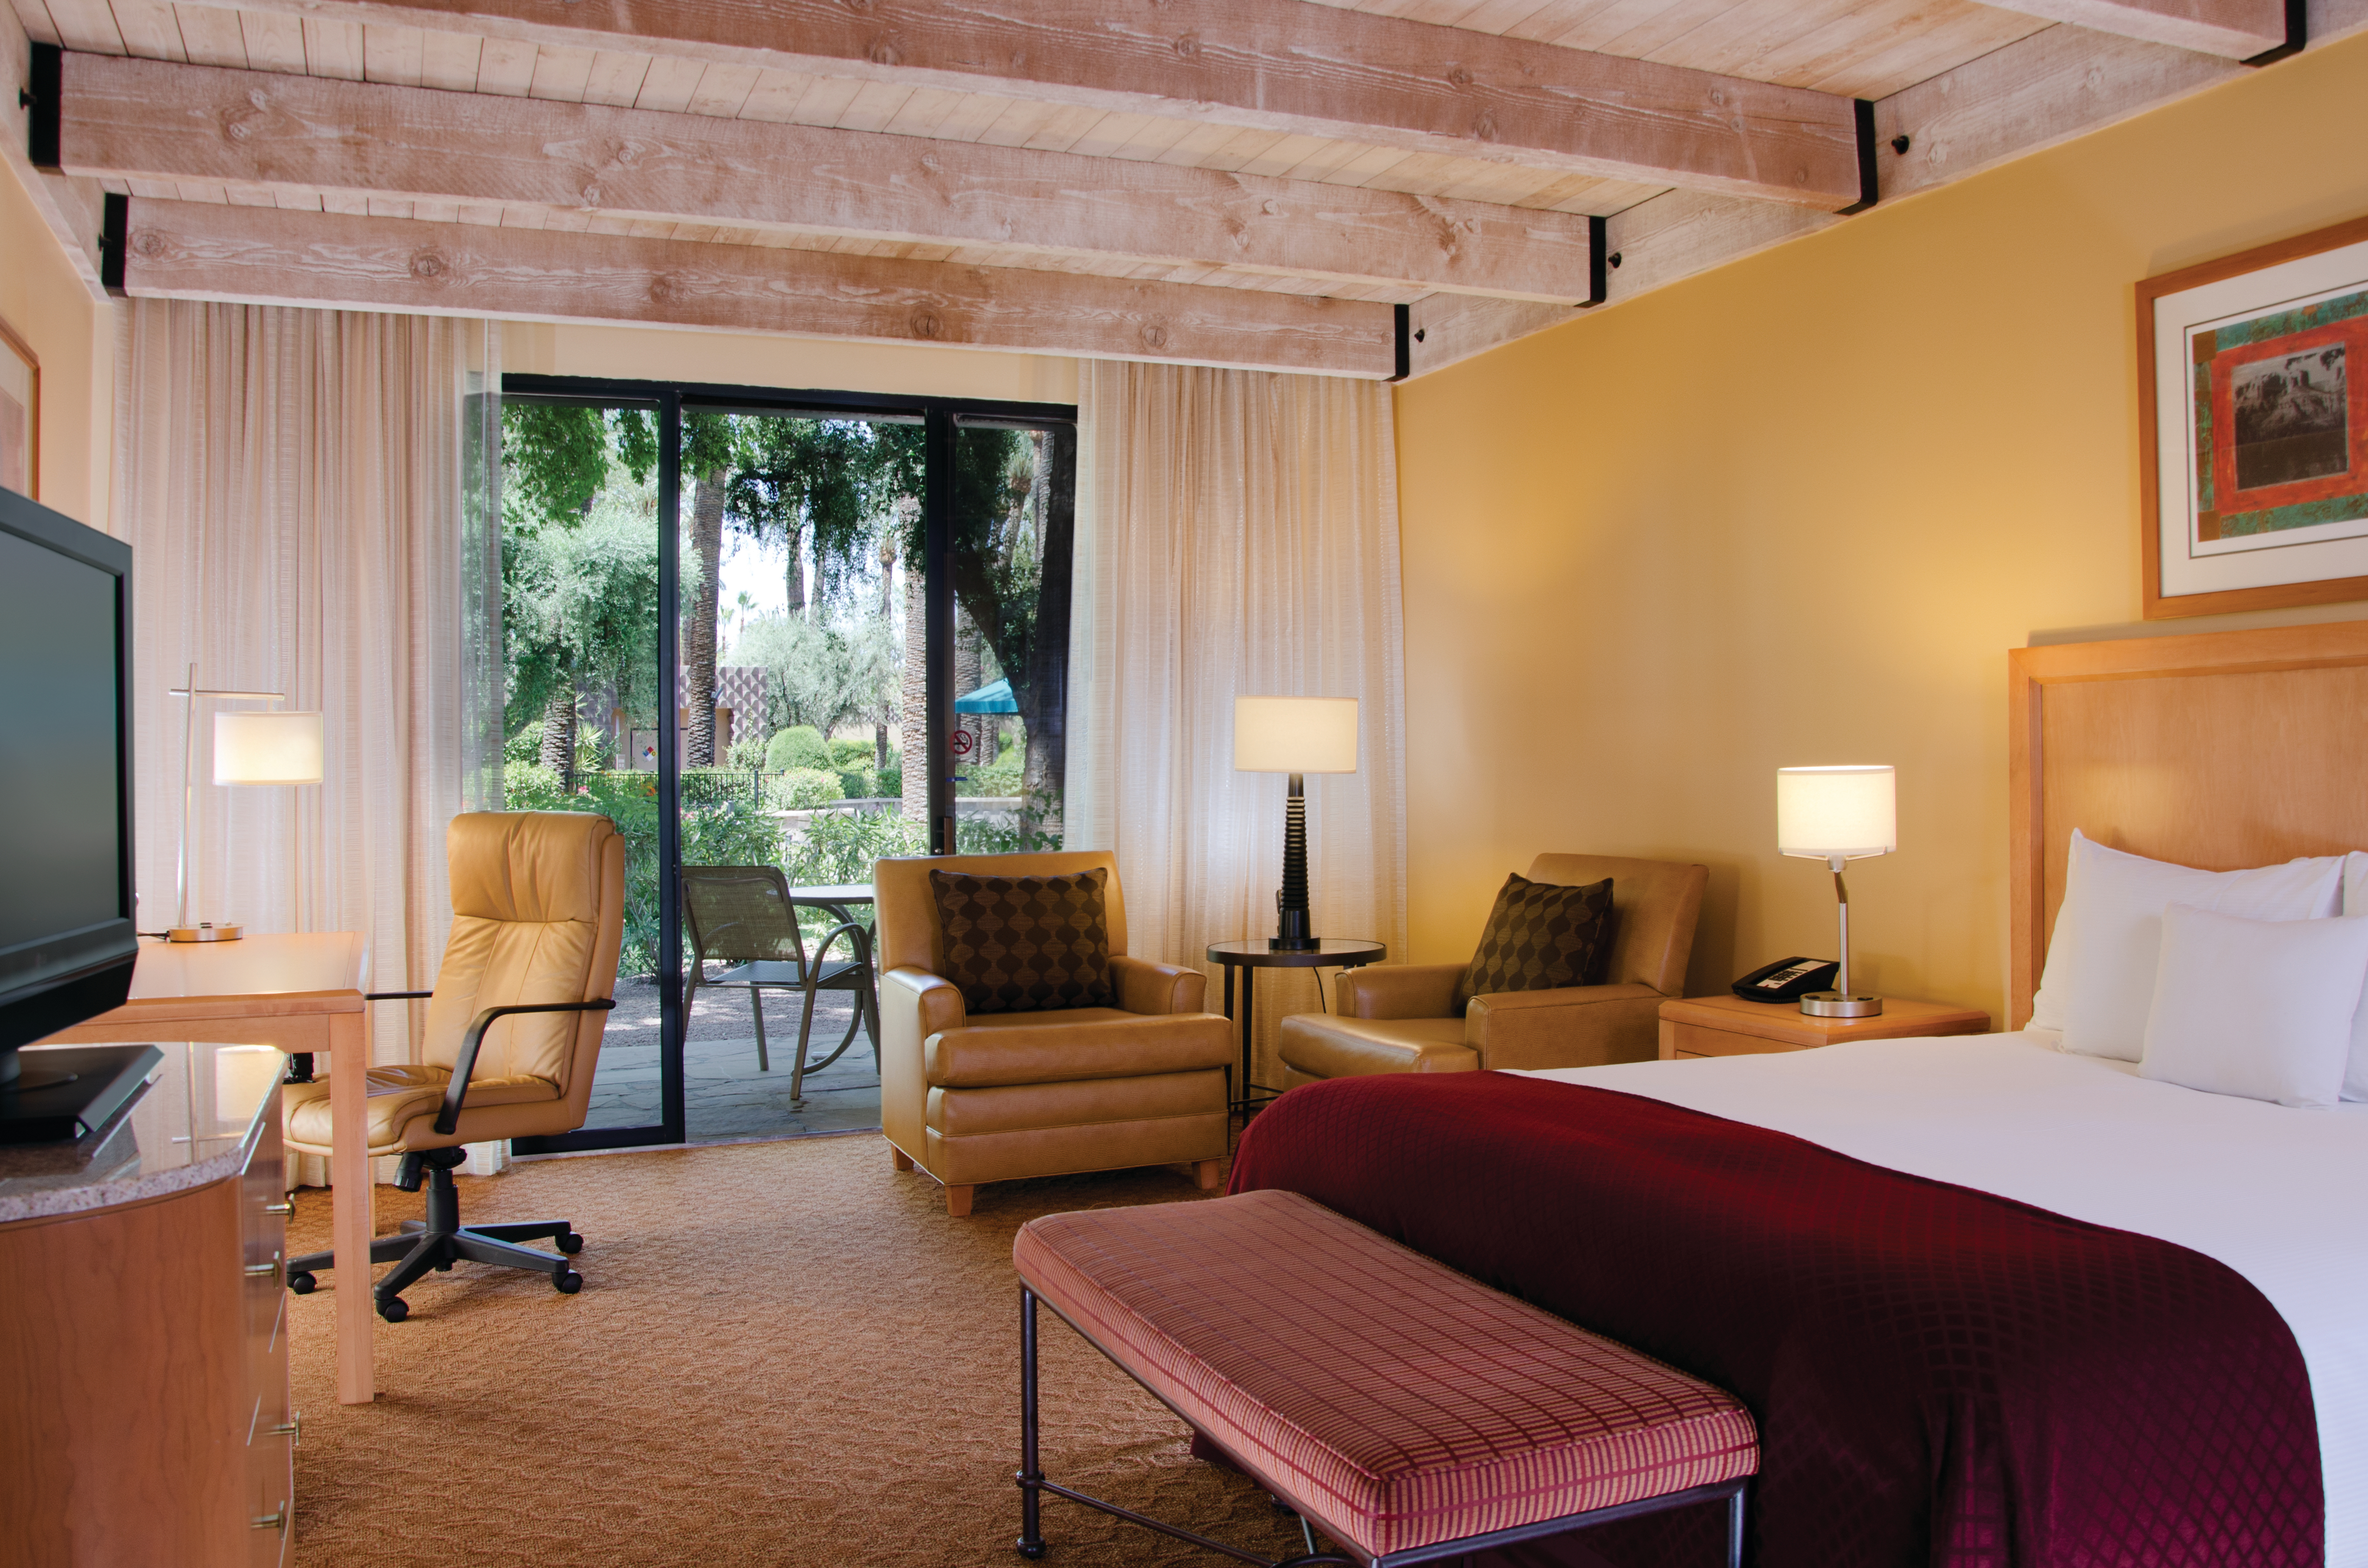 DoubleTree Resort by Hilton Hotel Paradise Valley - Scottsdale image 0